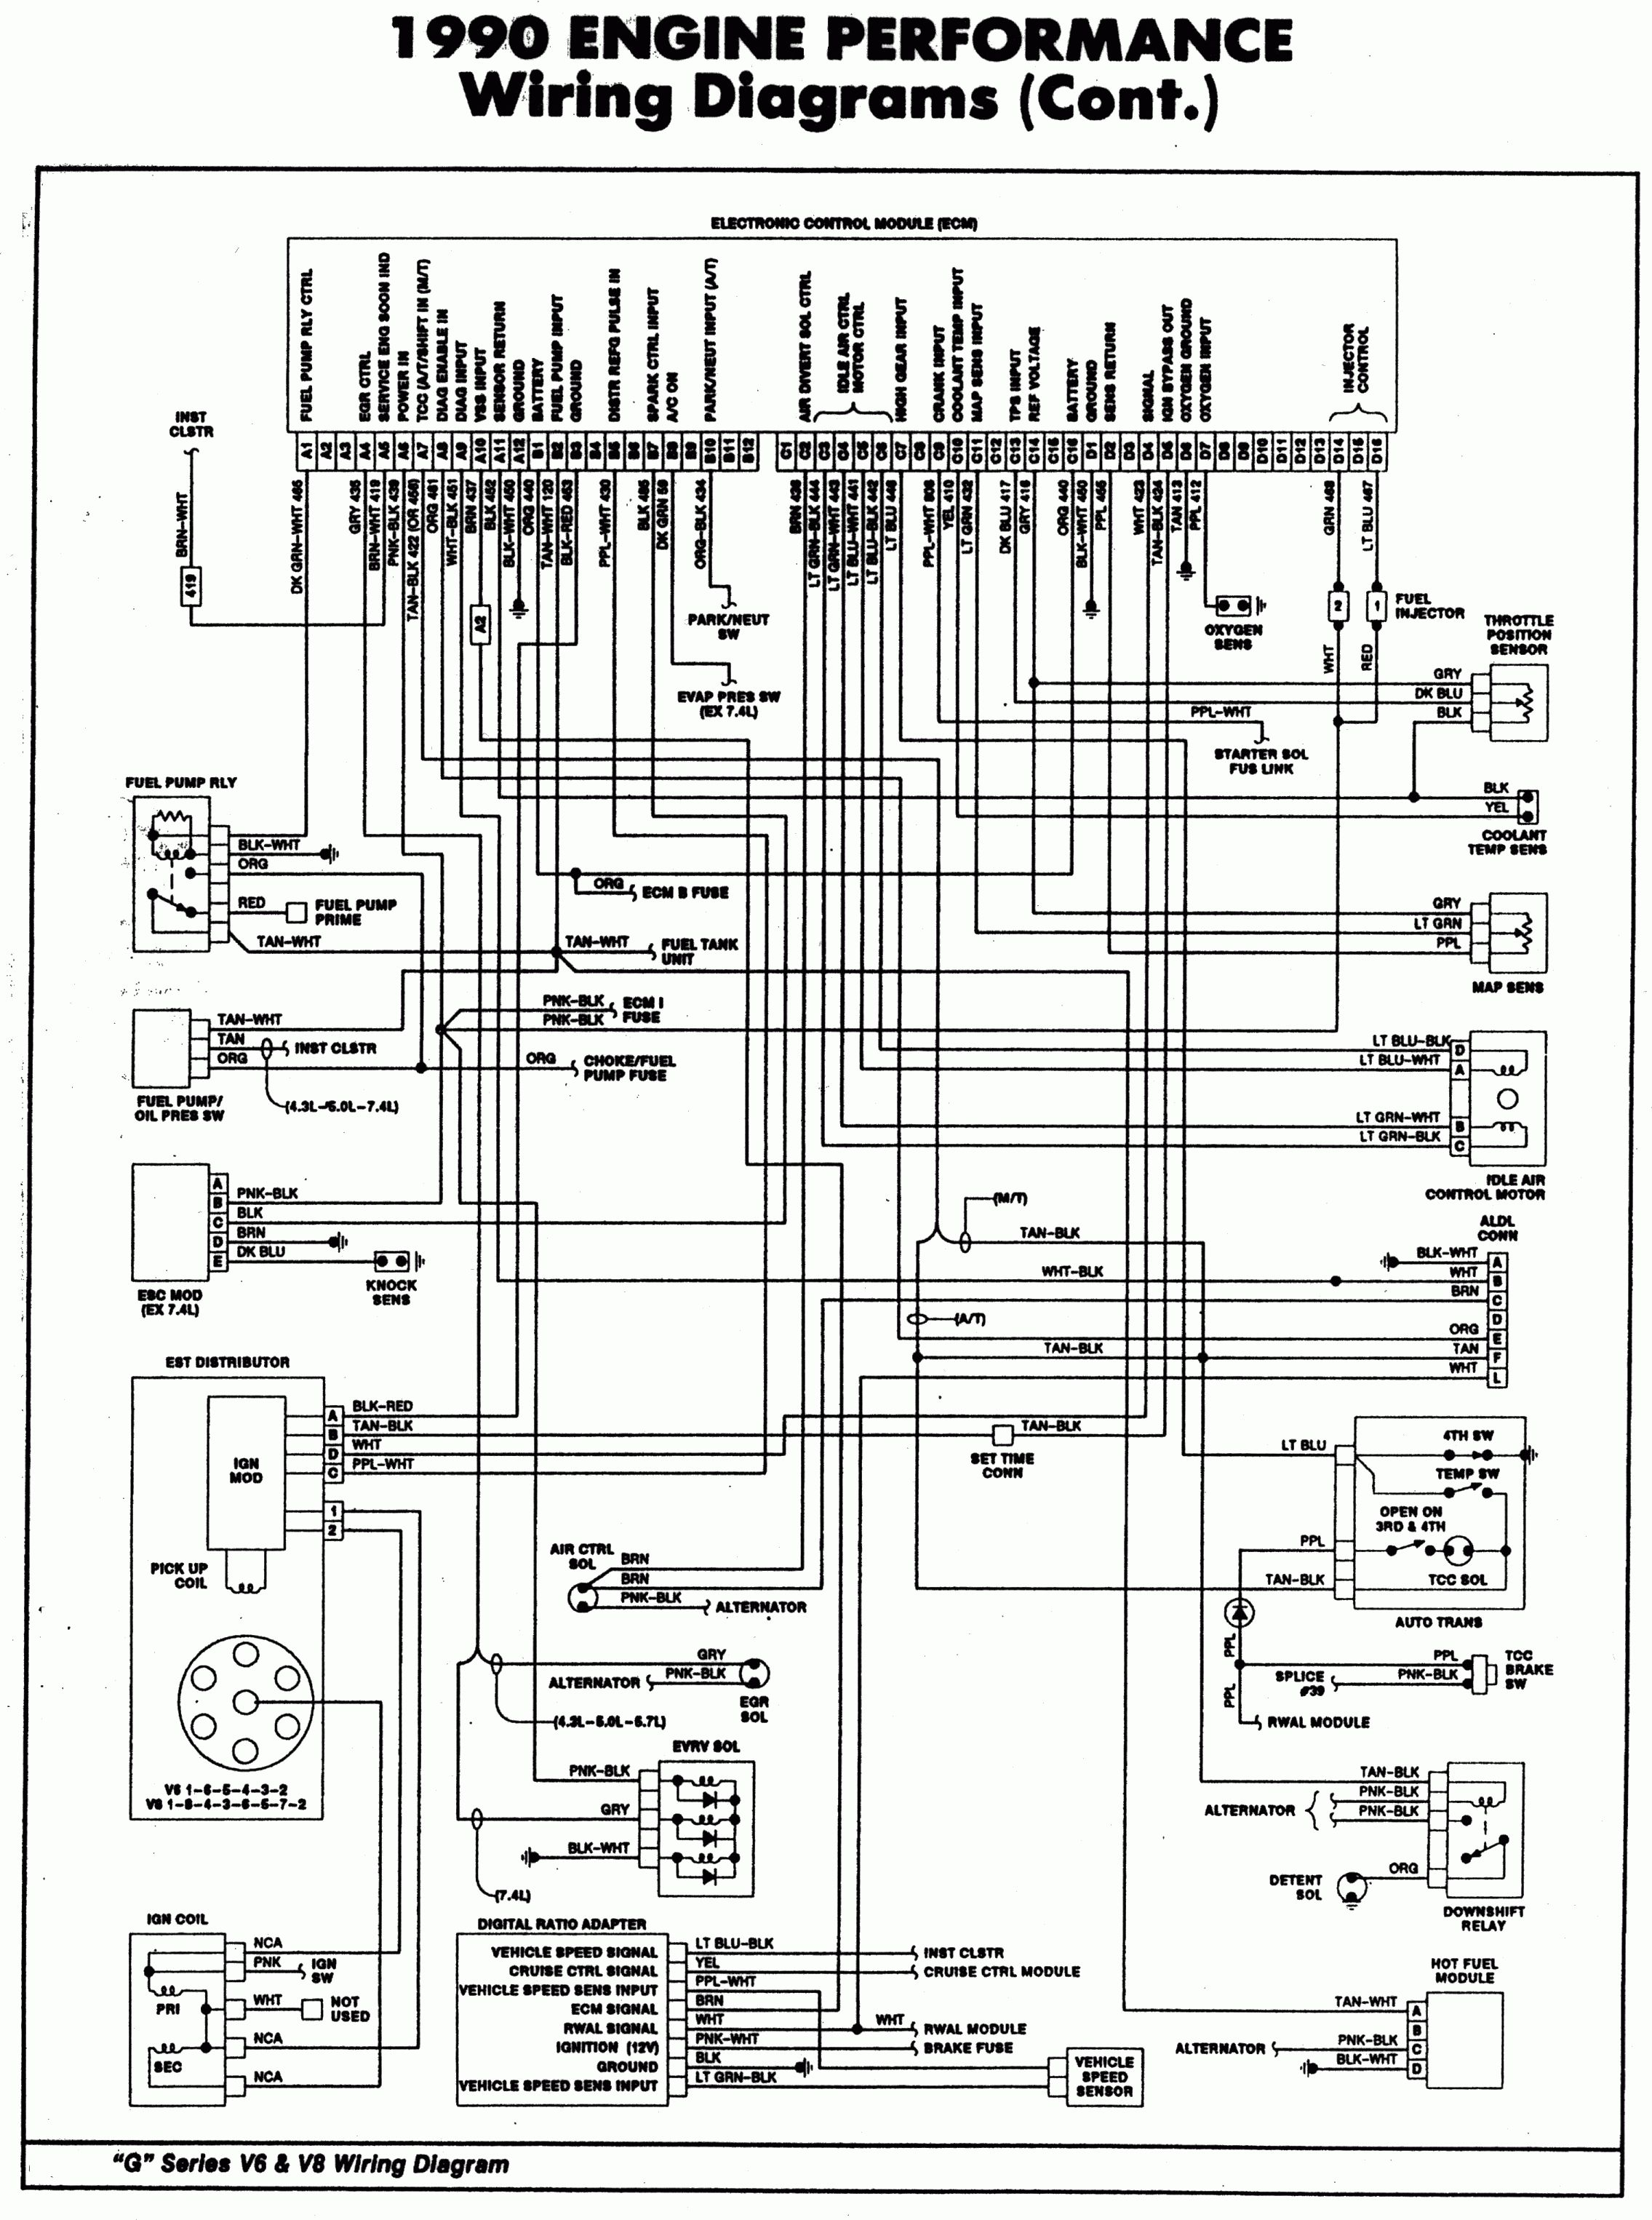 Brilliant 1990 Engine Performance Wiring Diagram With Control Module And Wiring Cloud Hisonuggs Outletorg